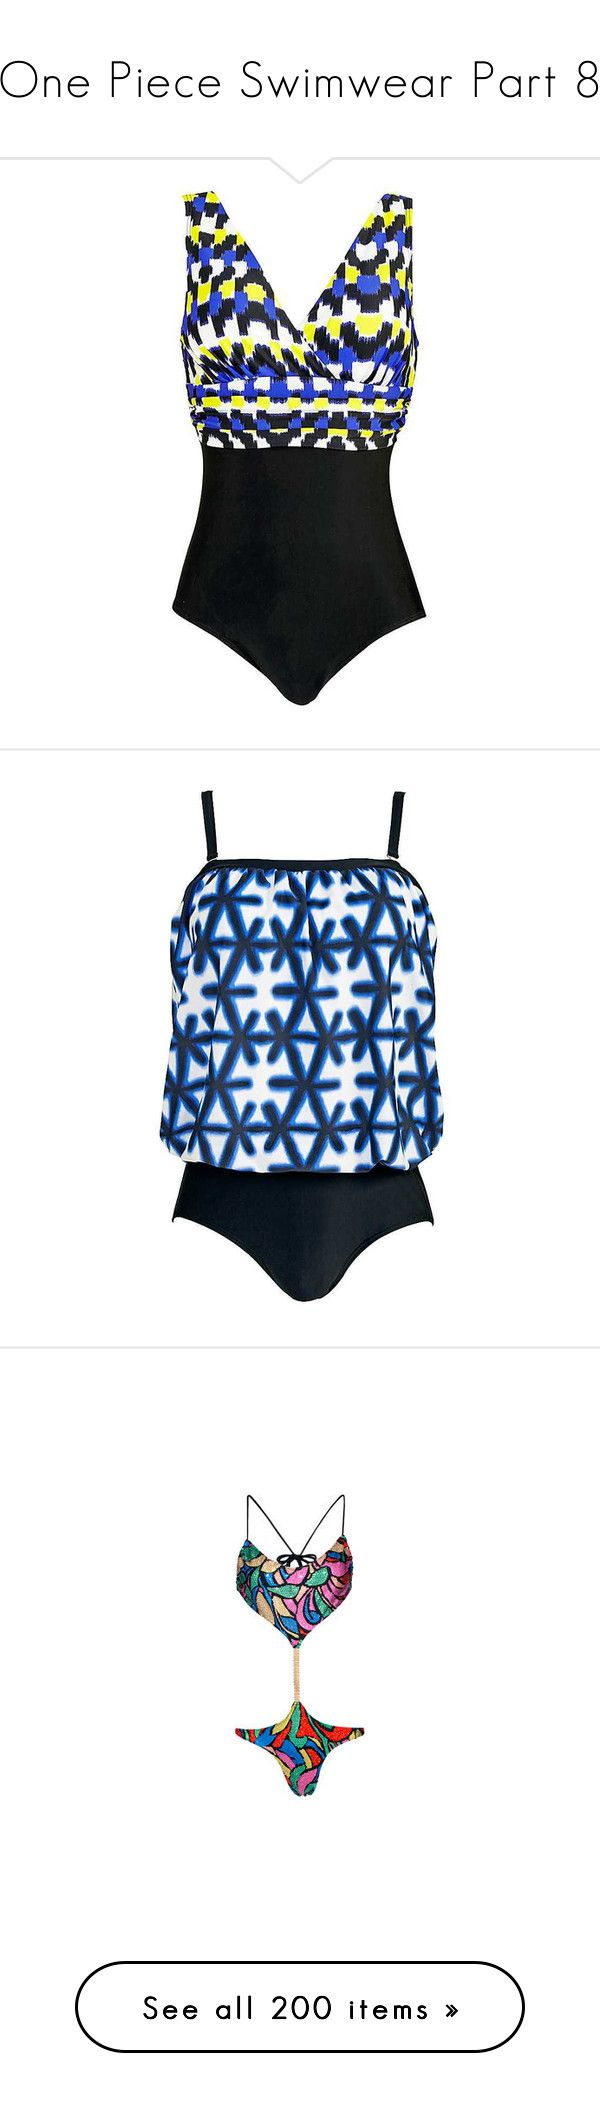 """""""One Piece Swimwear Part 8"""" by leanne-mcclean ❤ liked on Polyvore featuring swimwear, one-piece swimsuits, tummy control swimsuits, colorful swimsuits, swimsuit swimwear, tummy control swimwear, tummy control bathing suits, one piece swimsuit, bathing suit swimwear and blouson bathing suits"""